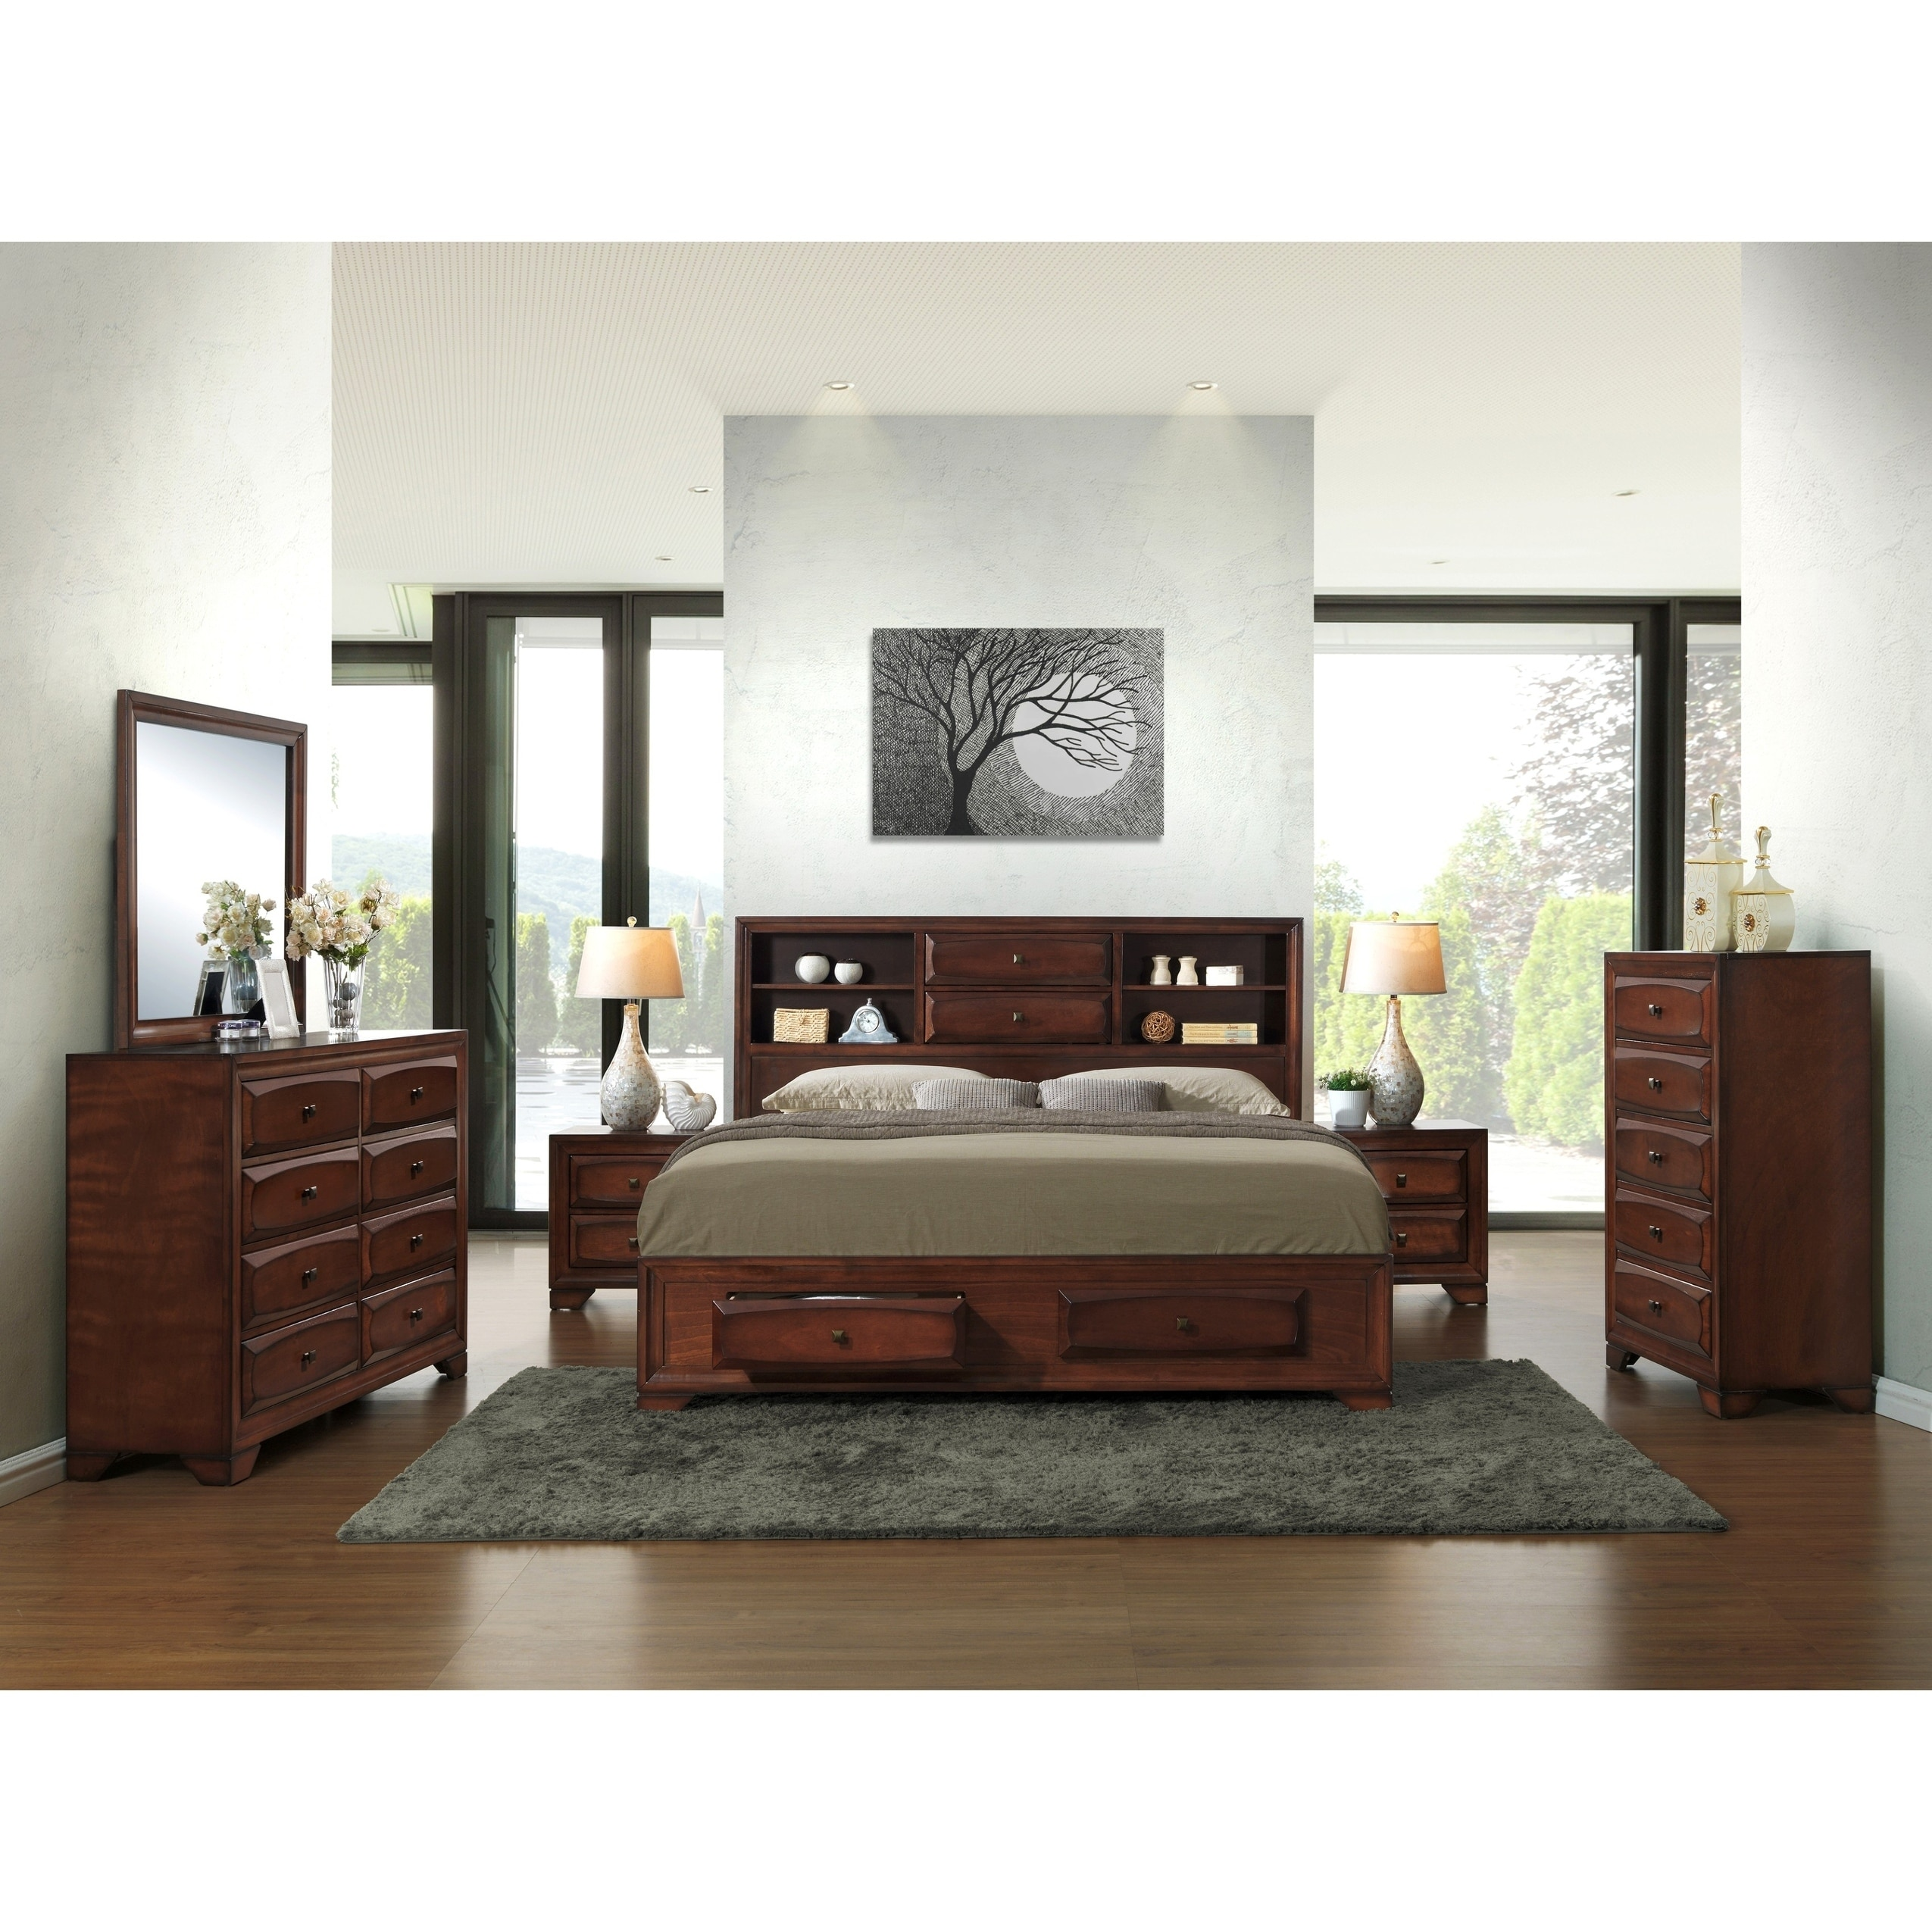 Shop Asger Antique Oak Finish Wood King Size 6 Piece Bedroom Set